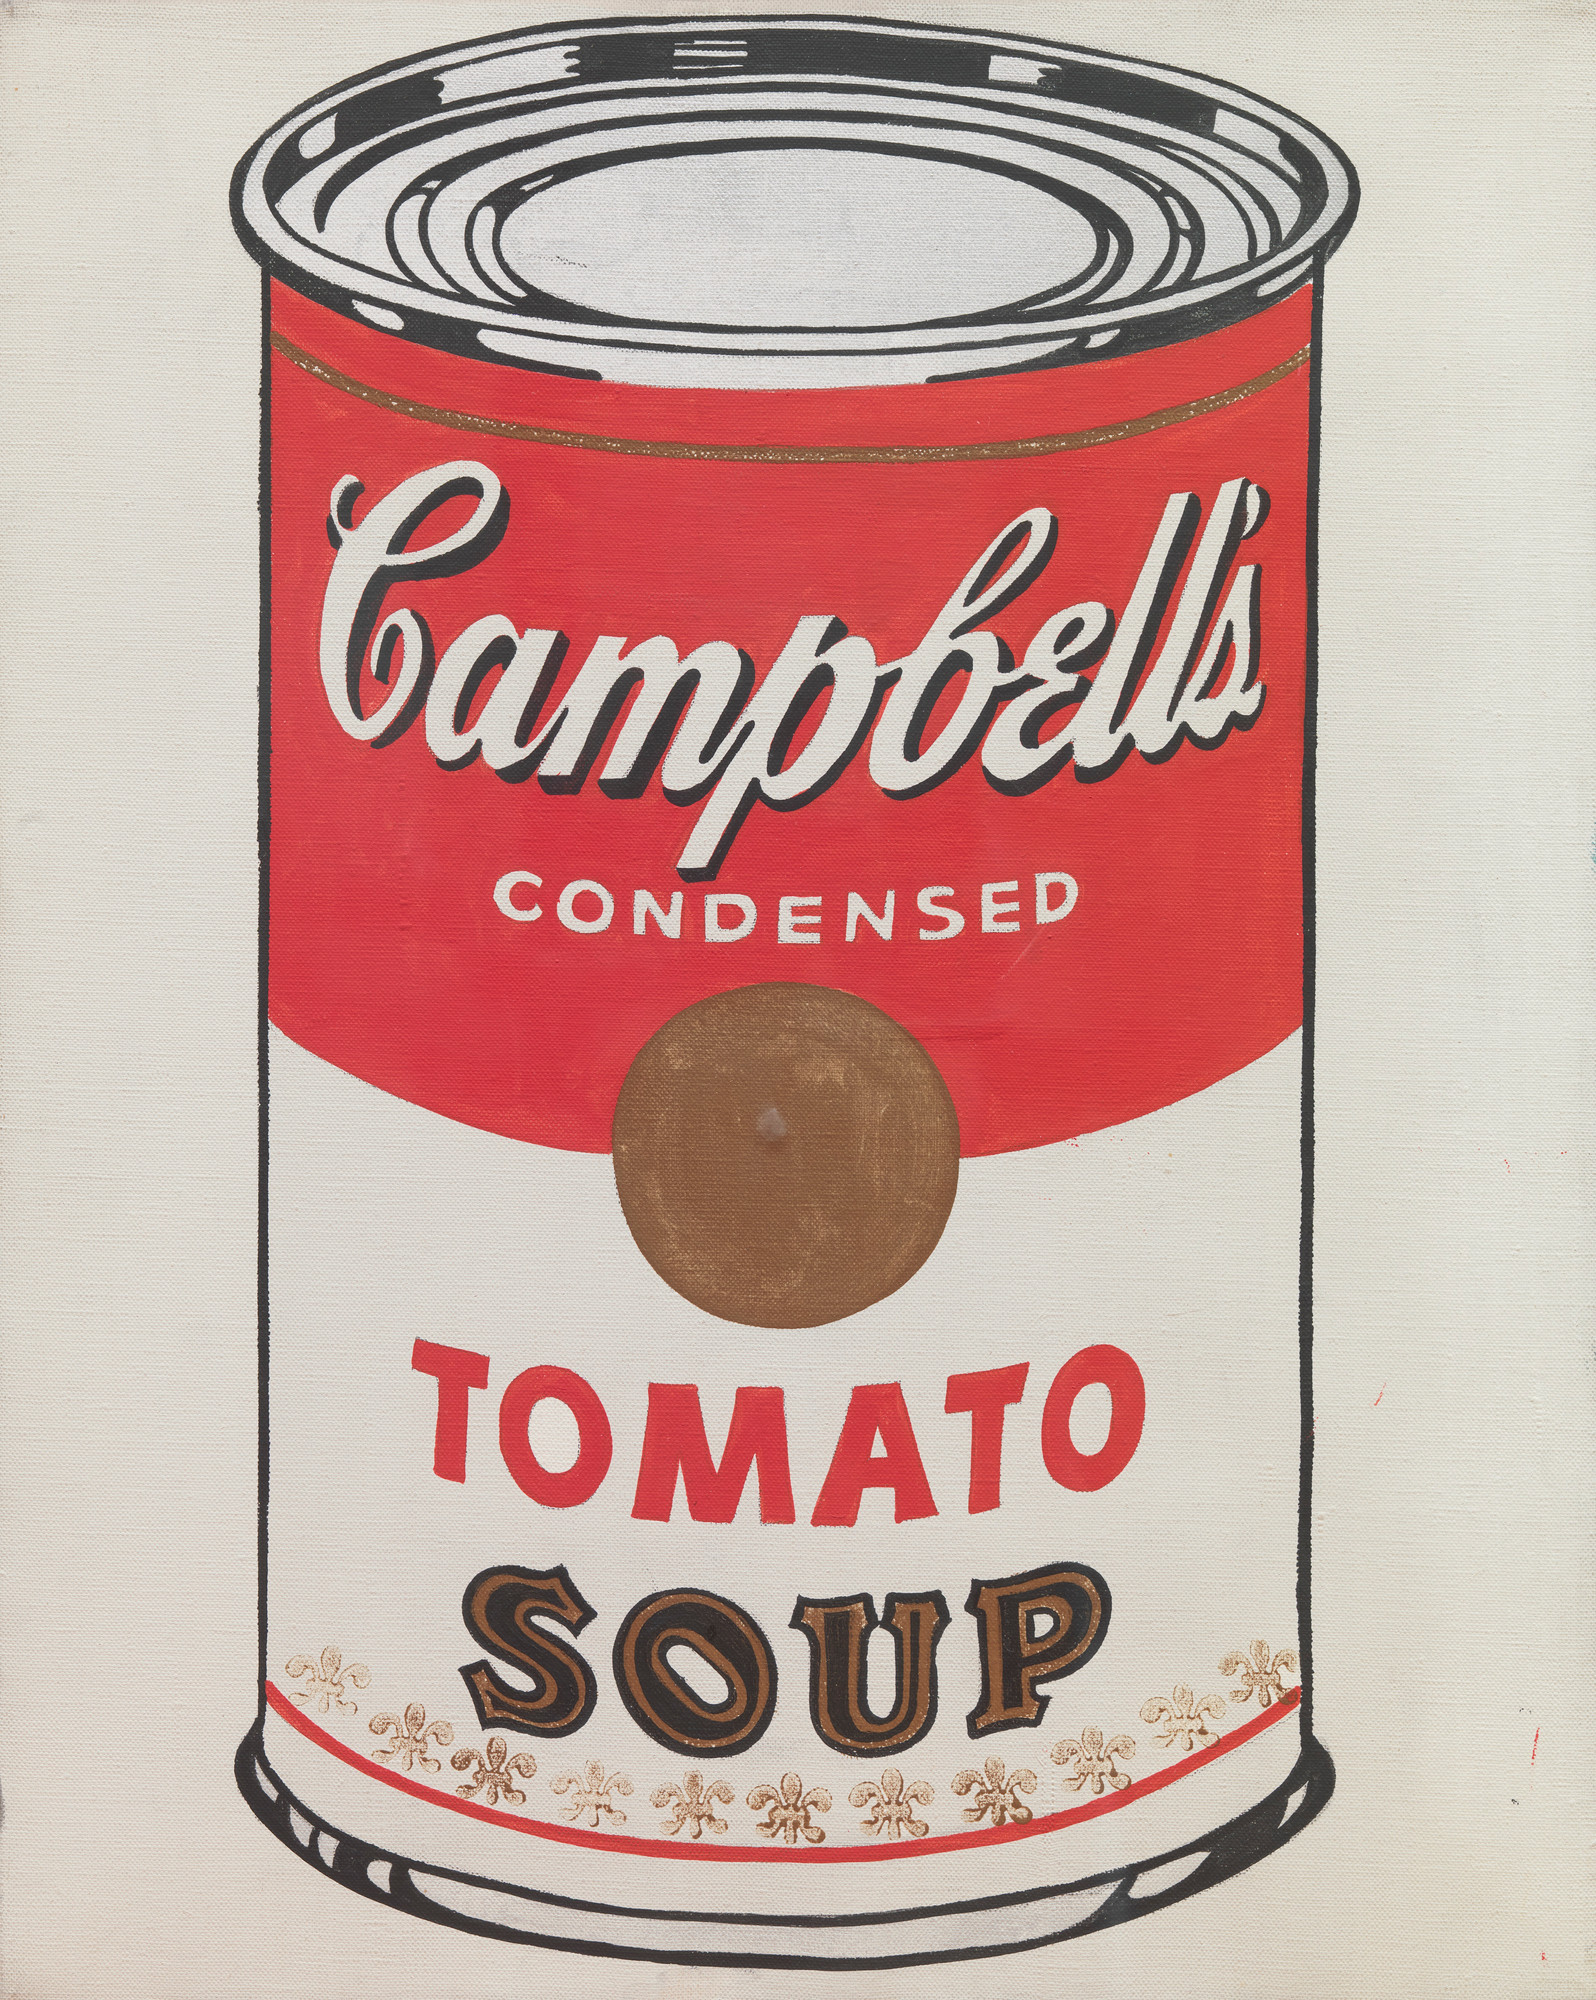 Andy Warhol (American, 1928–1987). Campbell's Soup Cans (detail). 1962. Synthetic polymer paint on 32 canvases, each 20 × 16″ (50.8 × 40.6 cm). The Museum of Modern Art, New York. Partial gift of Irving Blum. Additional funding provided by Nelson A. Rockefeller Bequest, gift of Mr. and Mrs. William A.M. Burden, Abby Aldrich Rockefeller Fund, gift of Nina and Gordon Bunshaft in honor of Henry Moore, Lillie P. Bliss Bequest, Philip Johnson Fund, Frances R. Keech Bequest, gift of Mrs. Bliss Parkinson, and Florence B. Wesley Bequest (all by exchange)